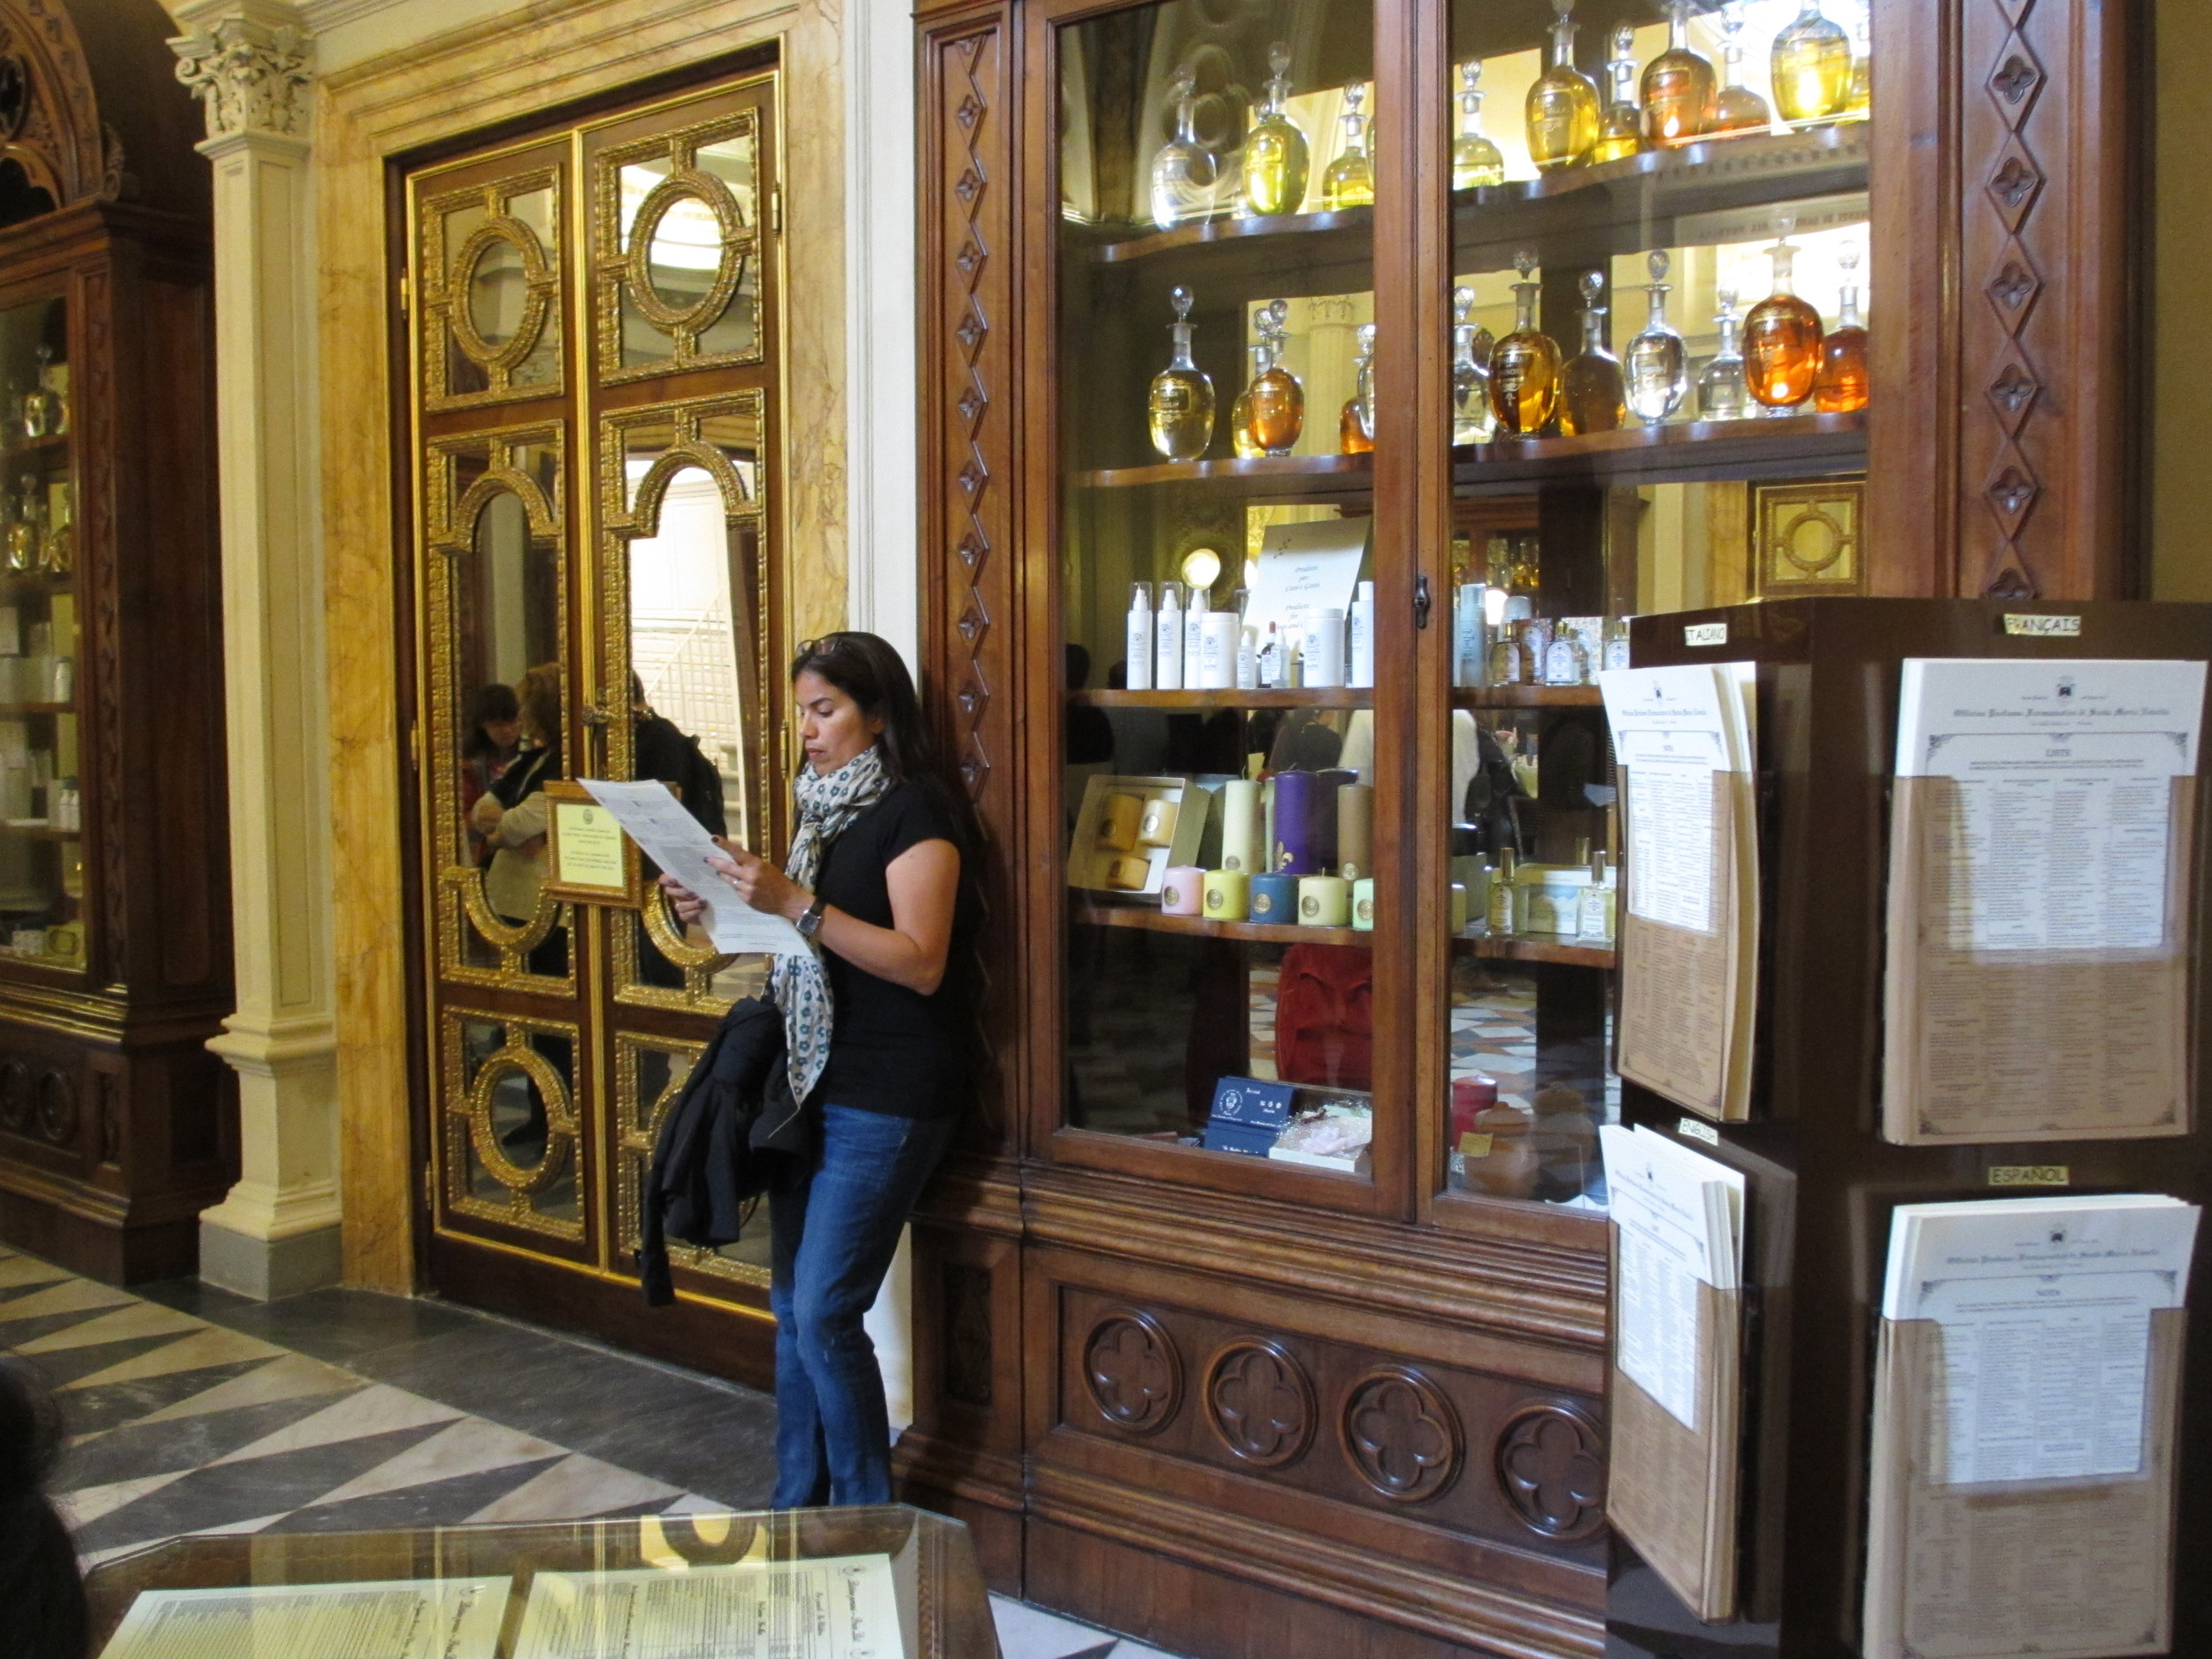 Shop at an apothecary founded by medieval monks.